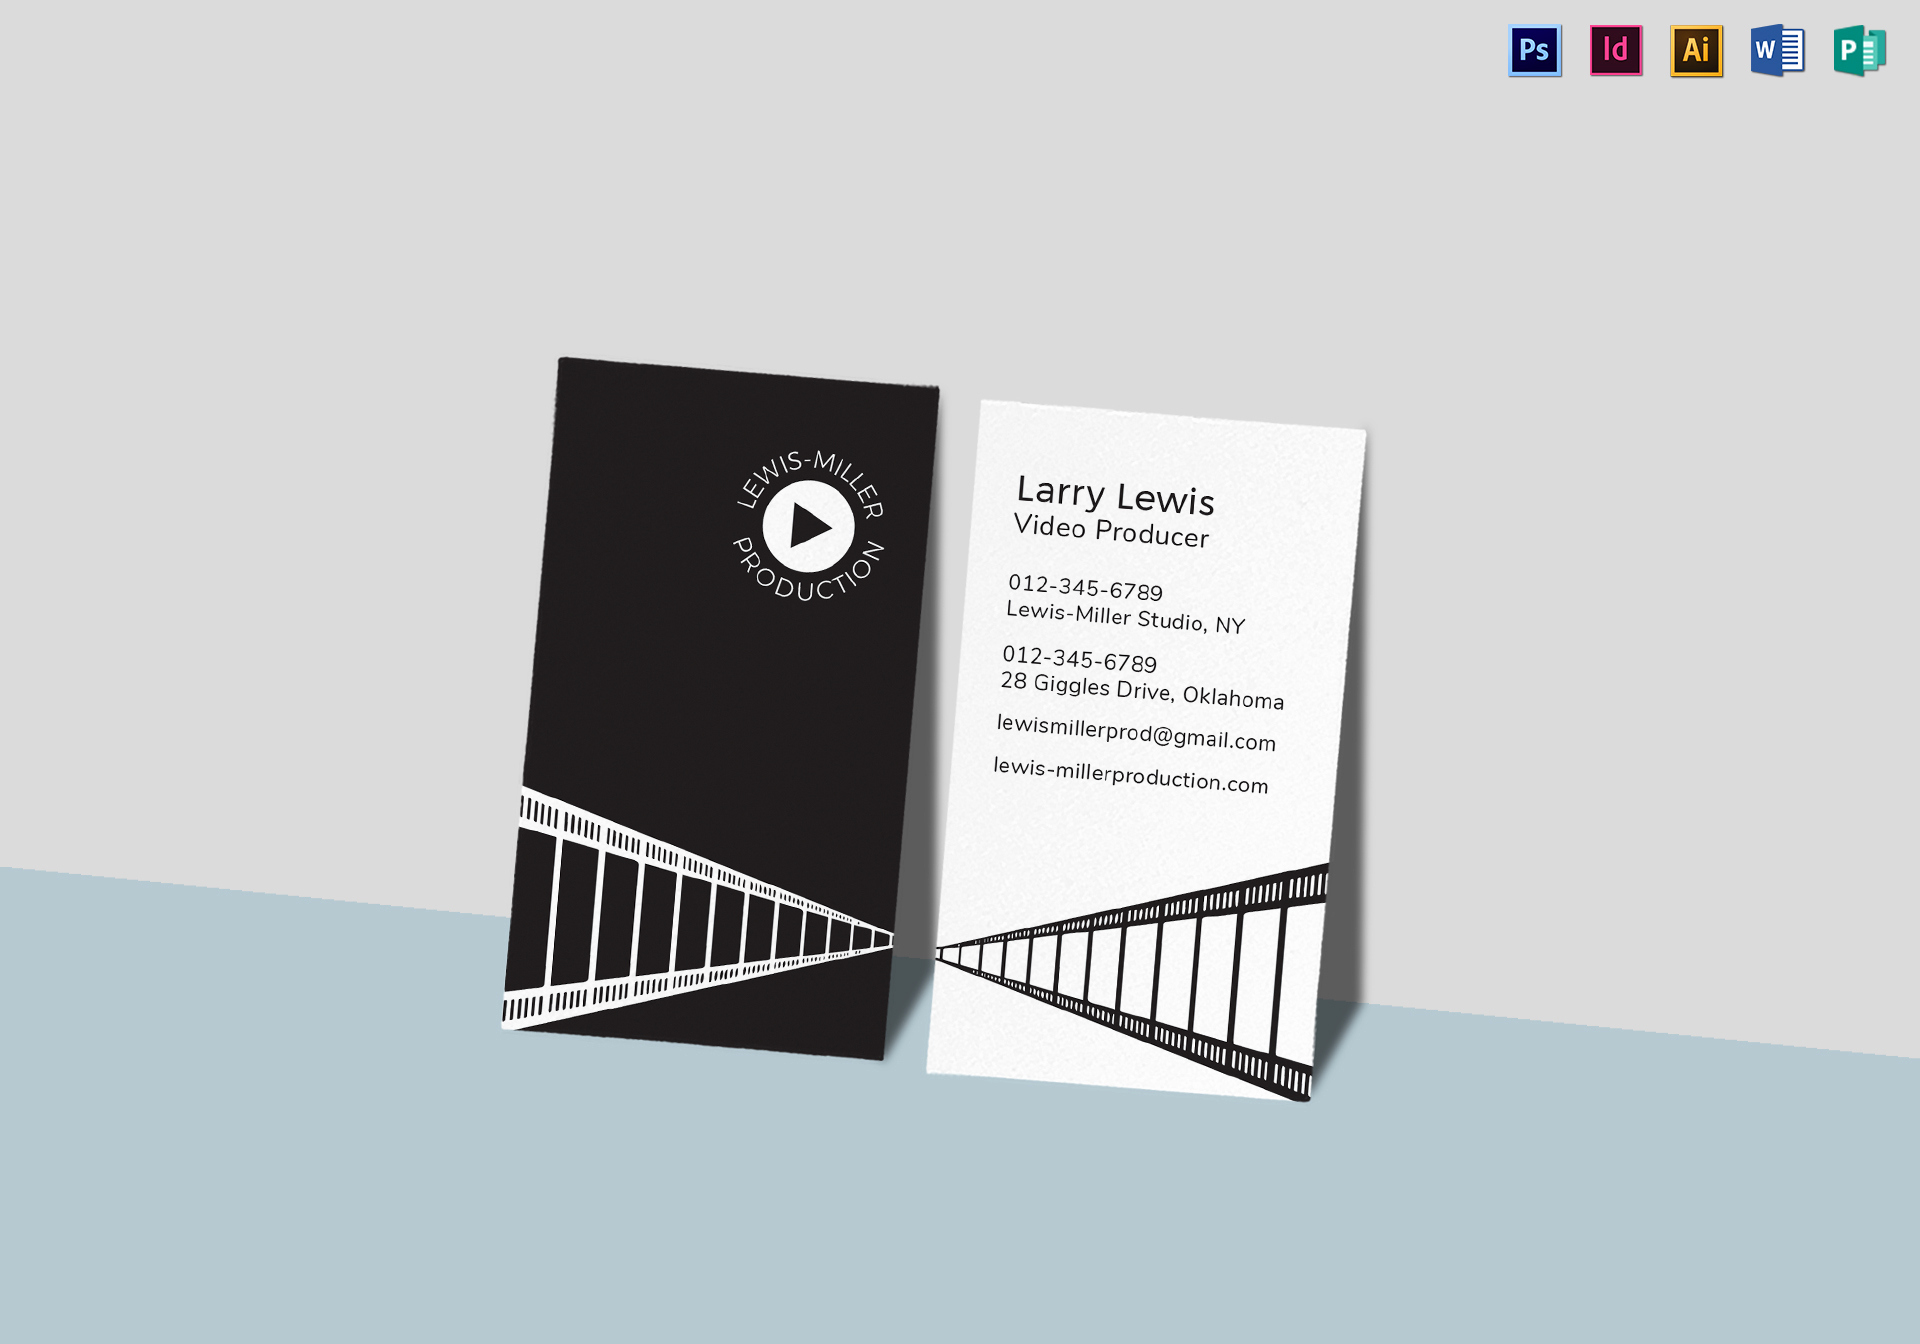 Indesign Business Cards Templates Best Of Video Producer Business Card Template In Psd Word